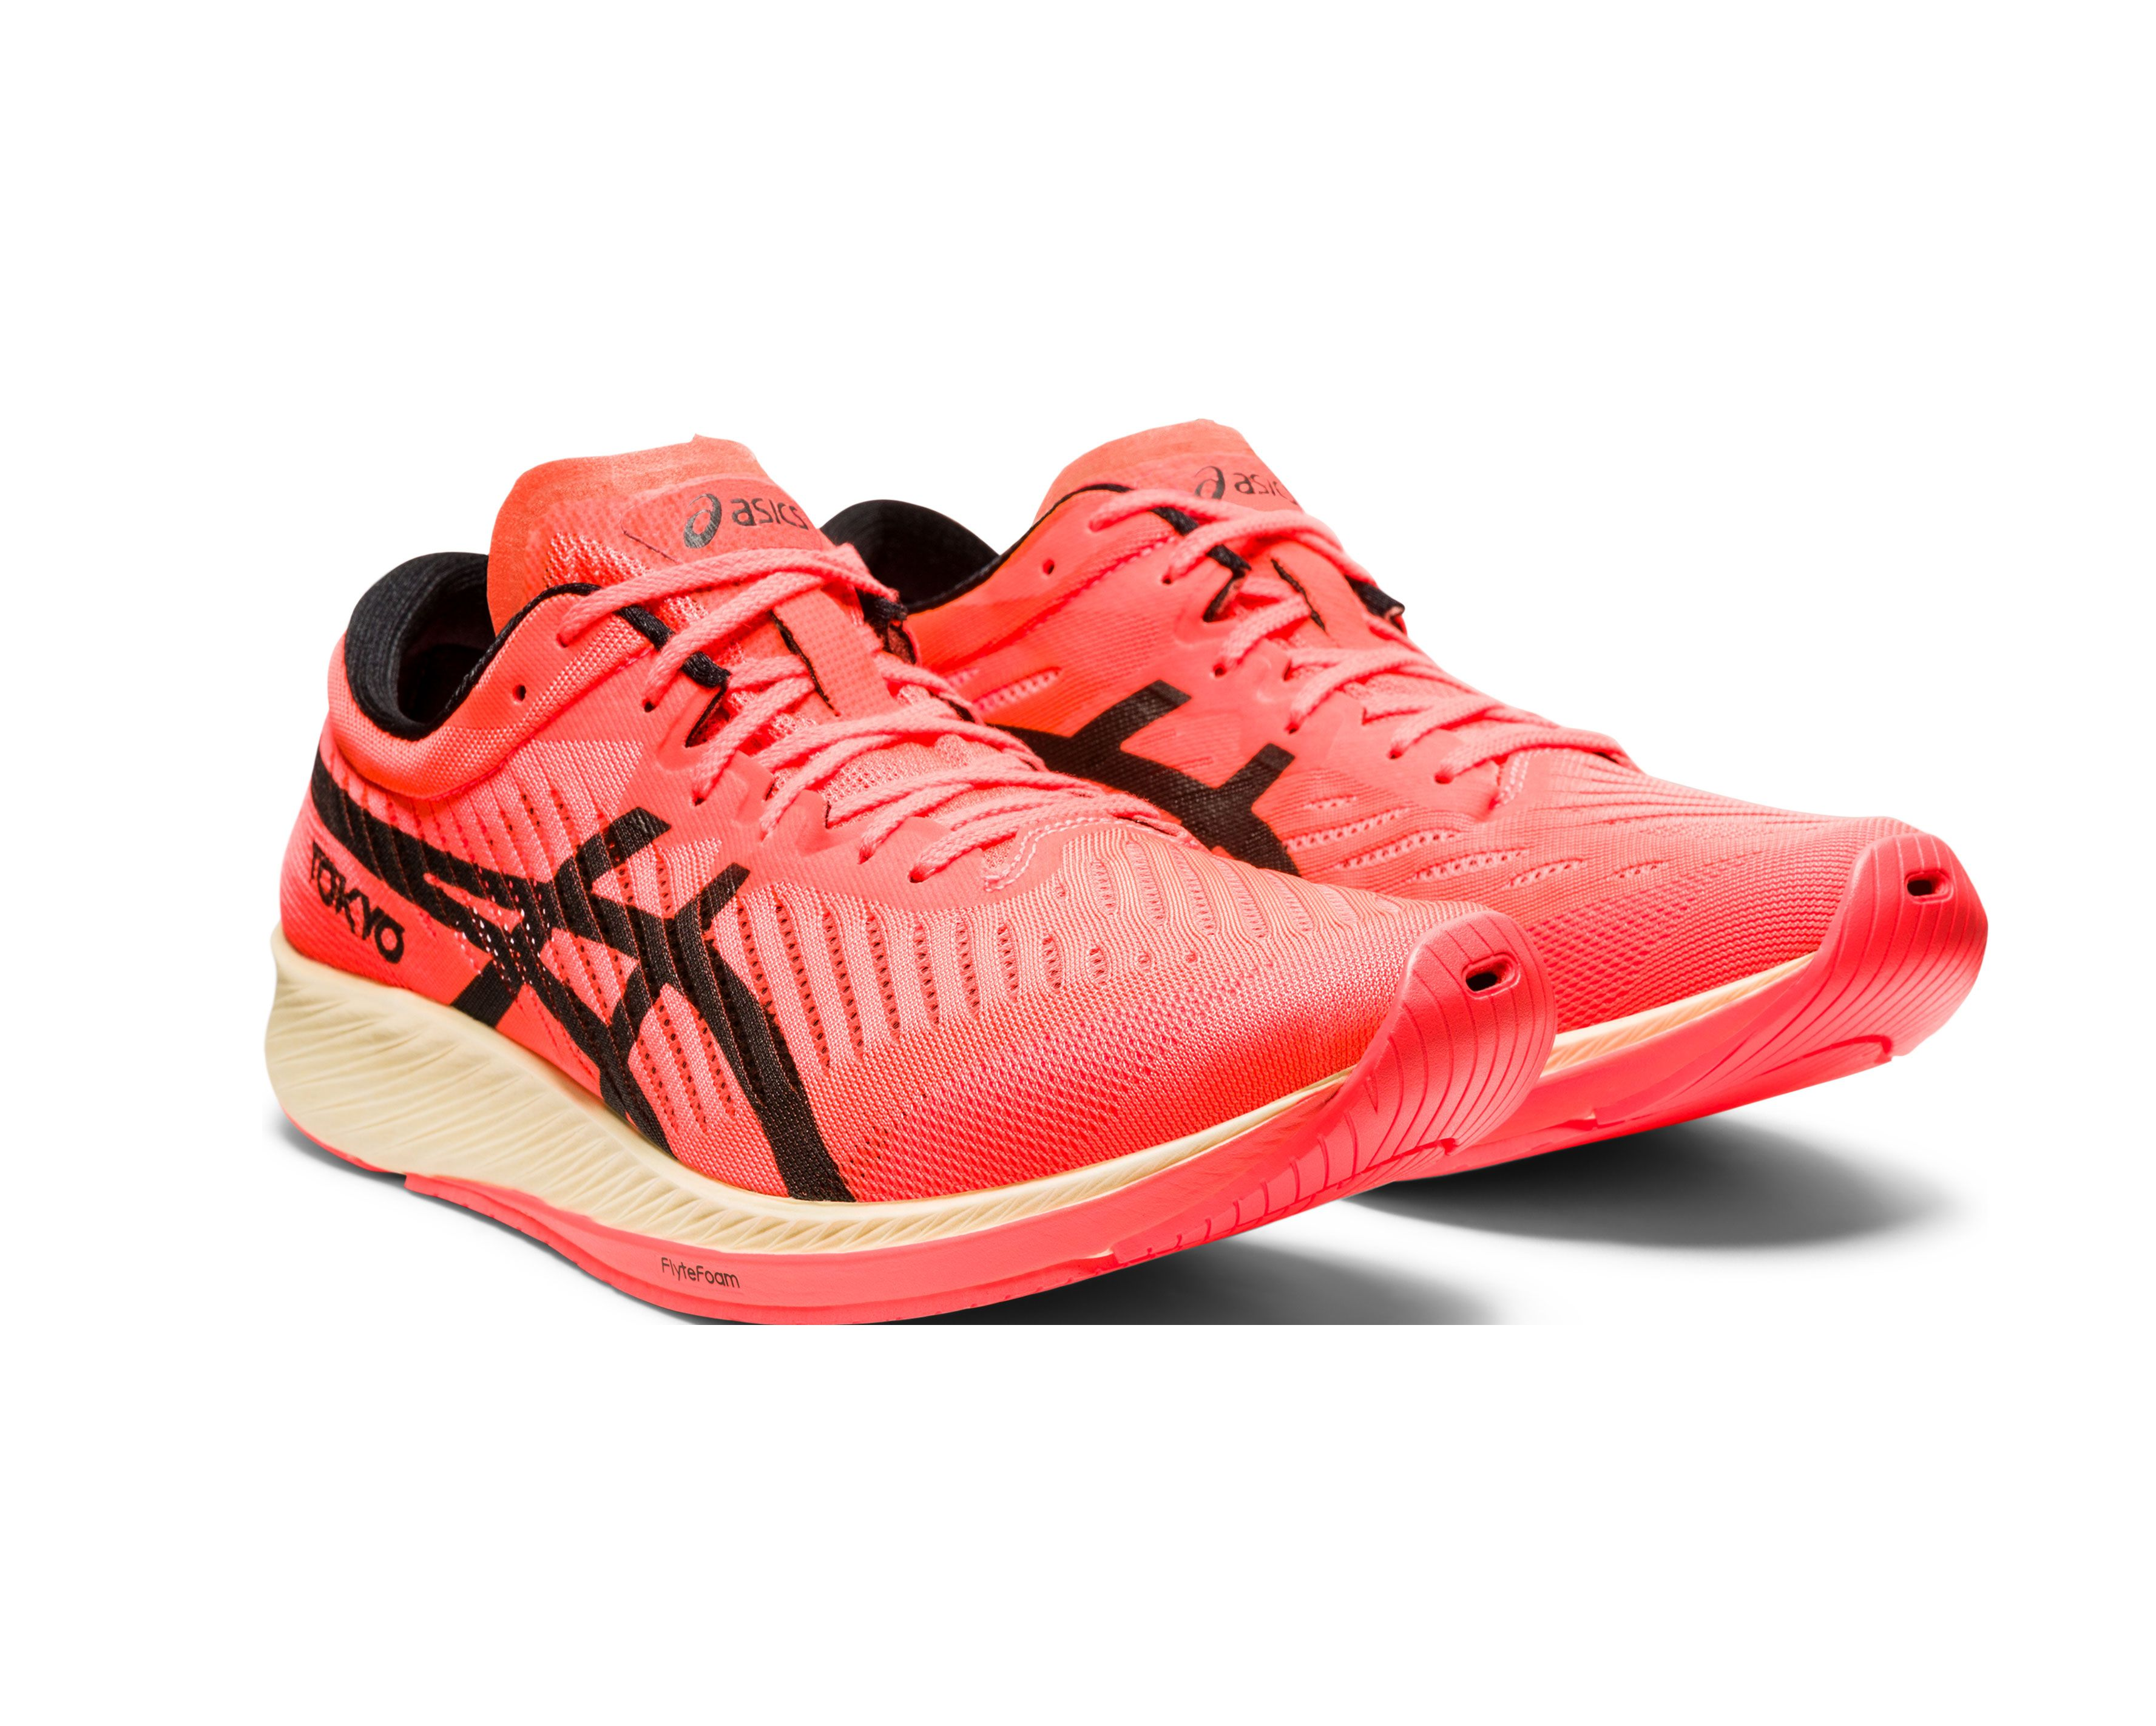 ventas especiales tan baratas compra genuina Asics Metaracer - nuevas zapatillas para larga distancia